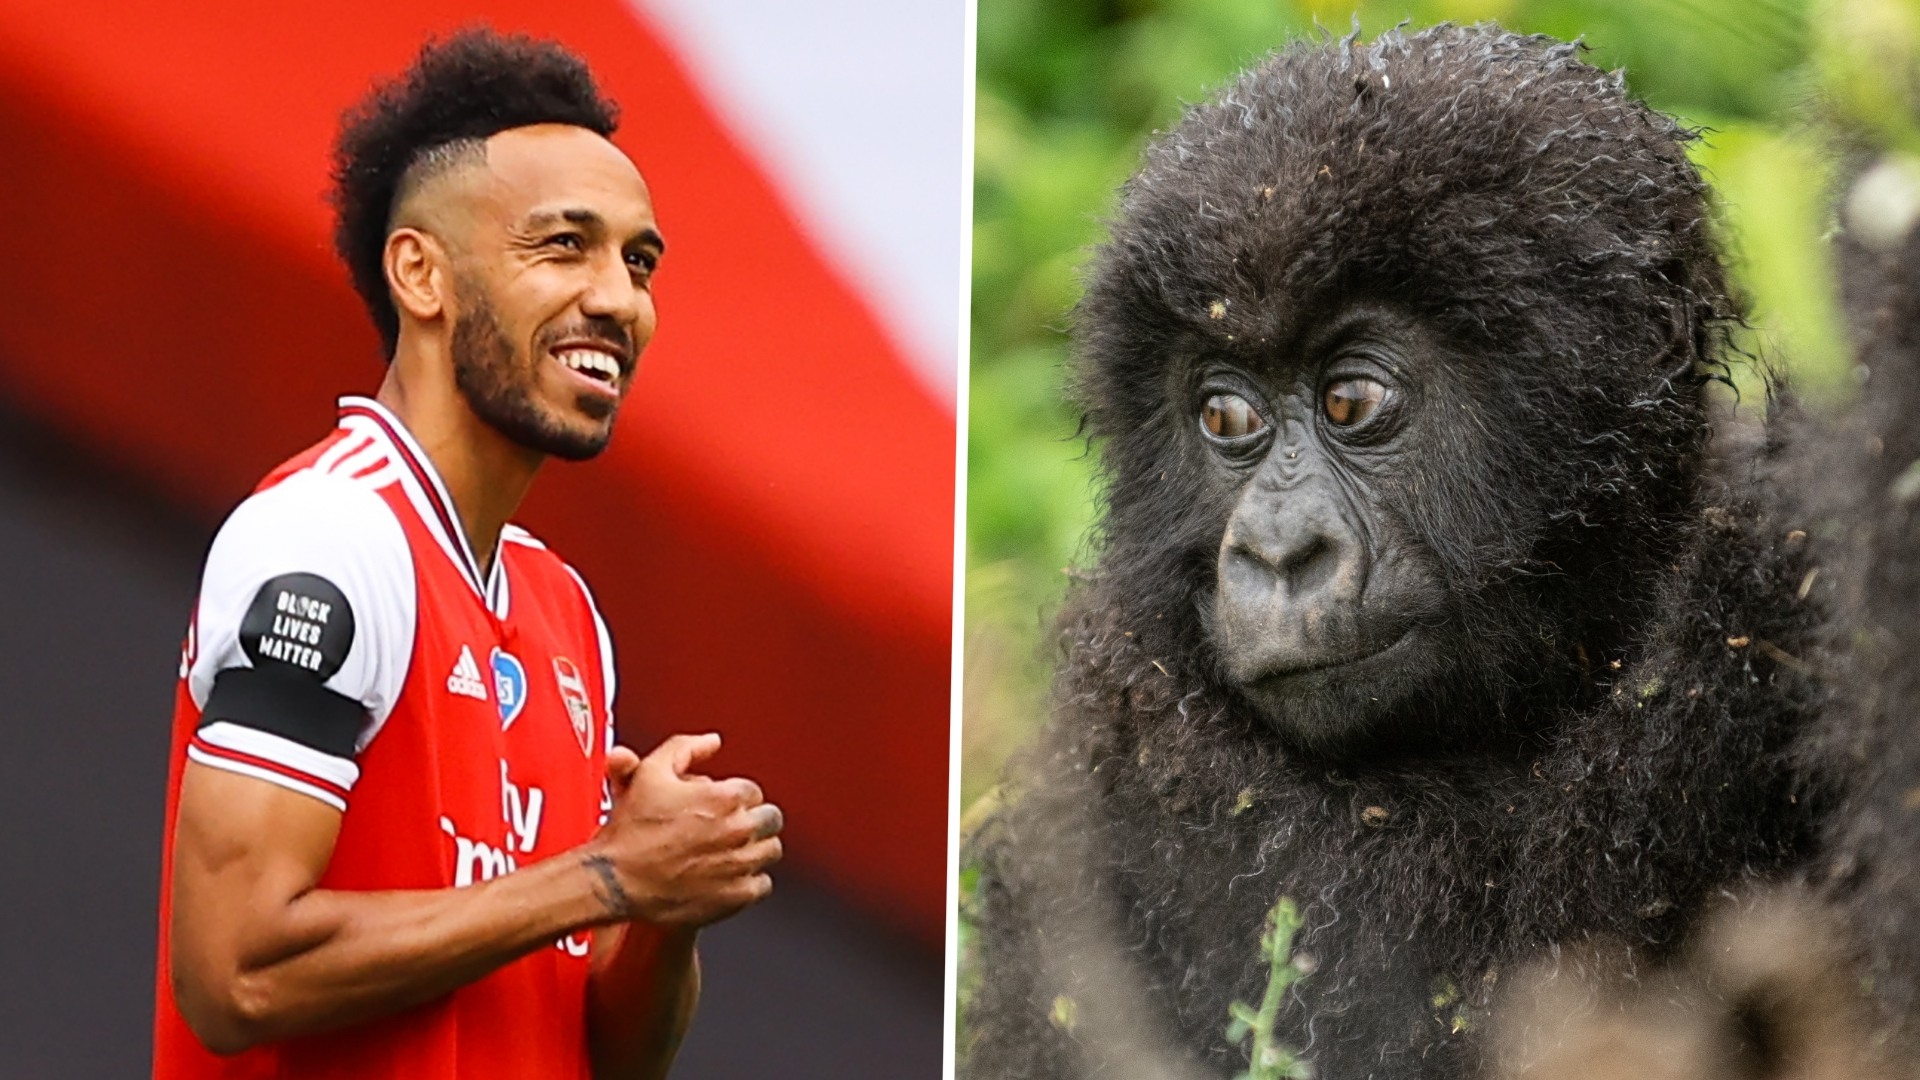 Arsenal stars Aubameyang, Bellerin & Leno name baby gorillas in Rwandan ceremony to promote conservation efforts